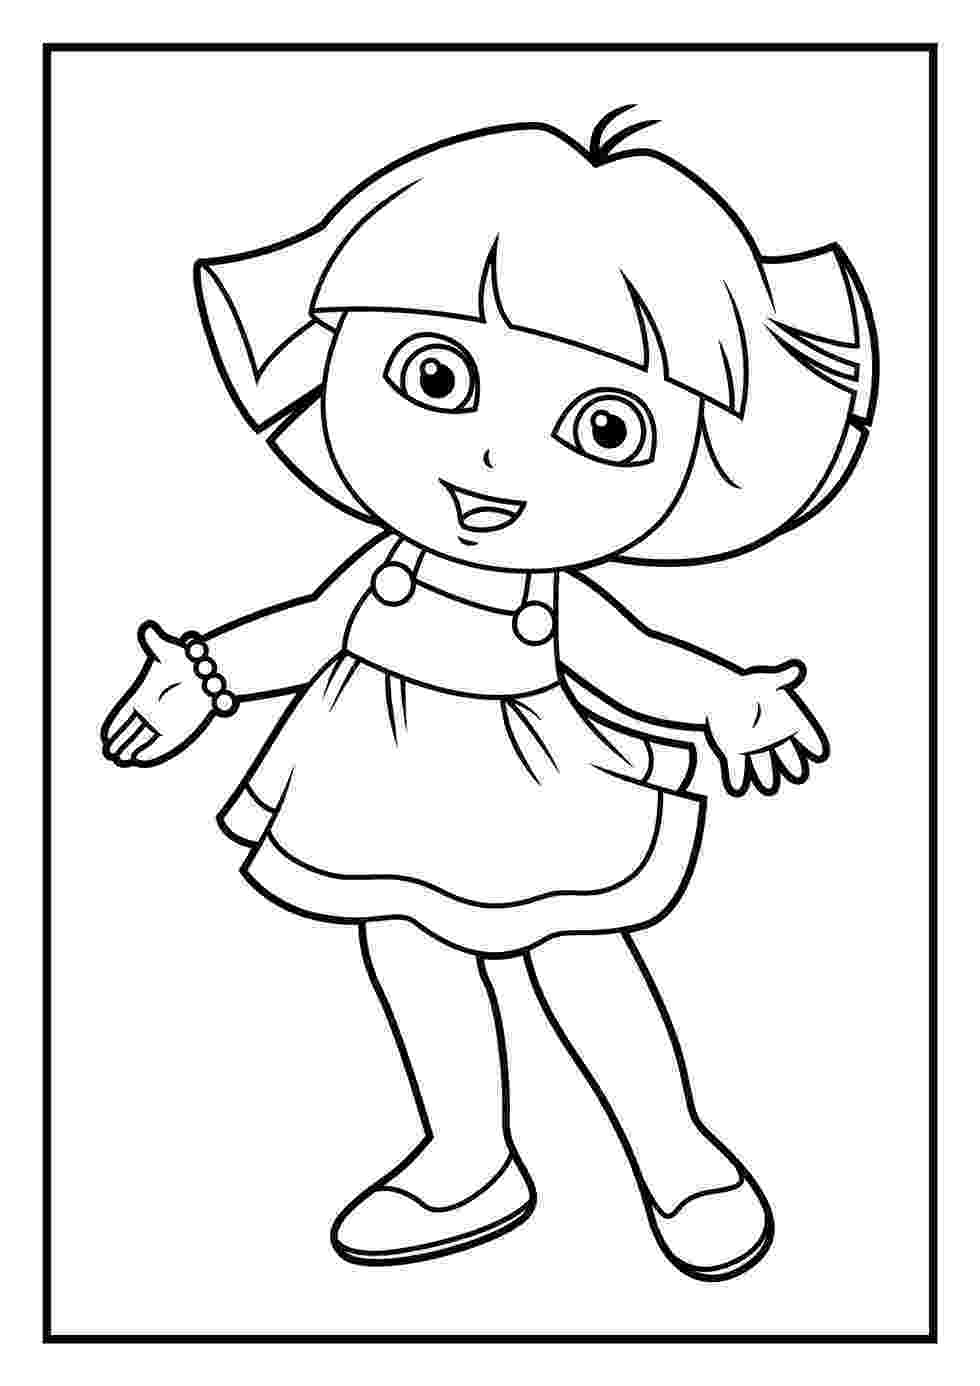 dora explorer coloring dora coloring pages cutecoloringcom dora coloring explorer